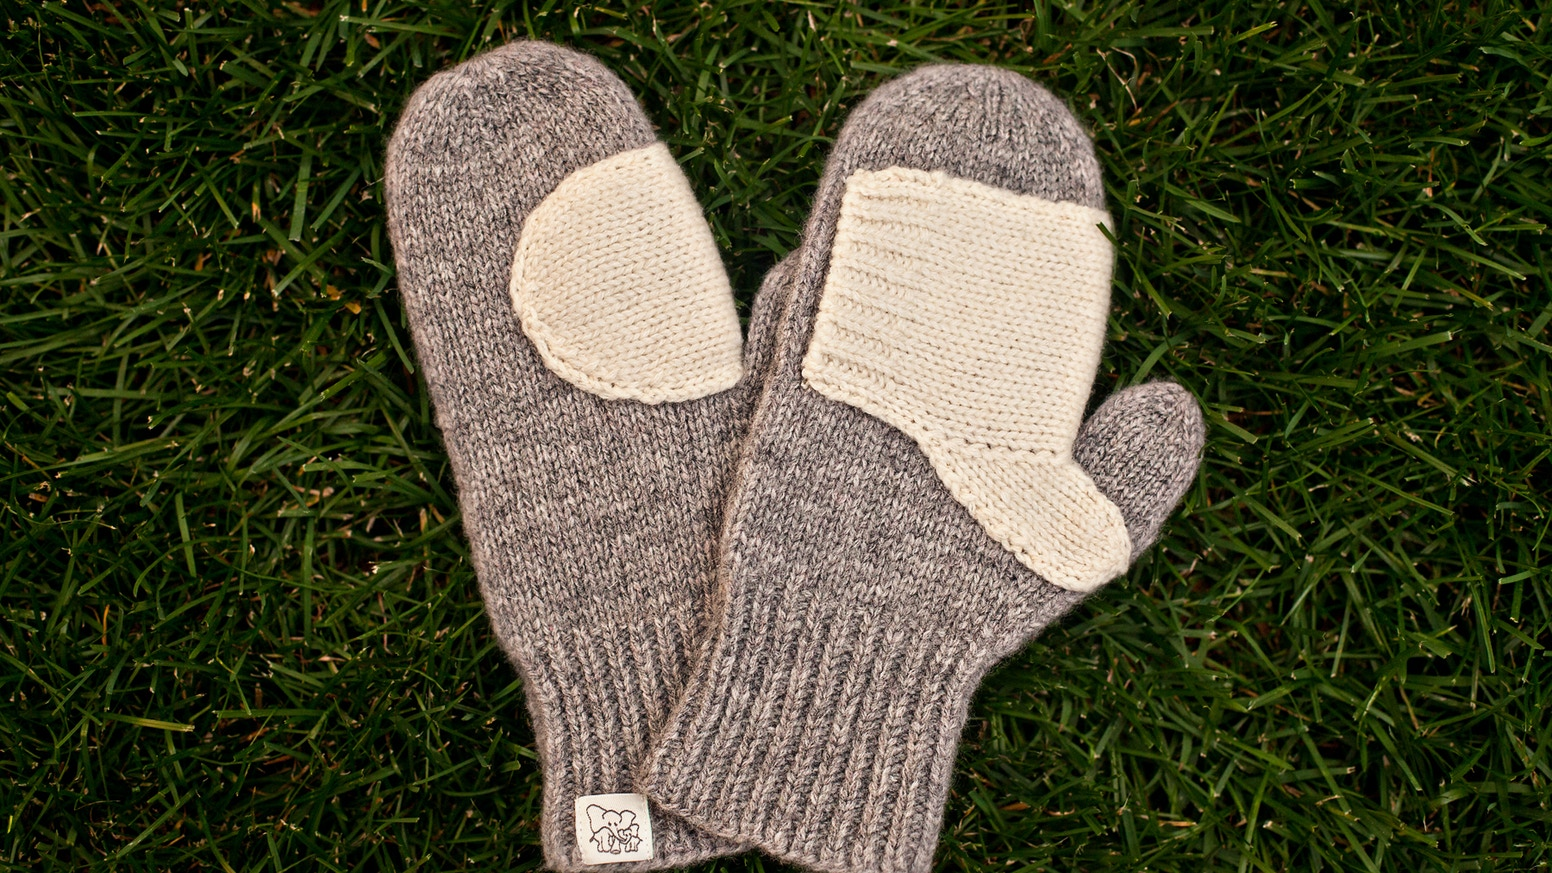 Forget Me Knot Mittens are women's mittens with a child-sized mitten attached to the palm of your hand, for hand holding on the go!